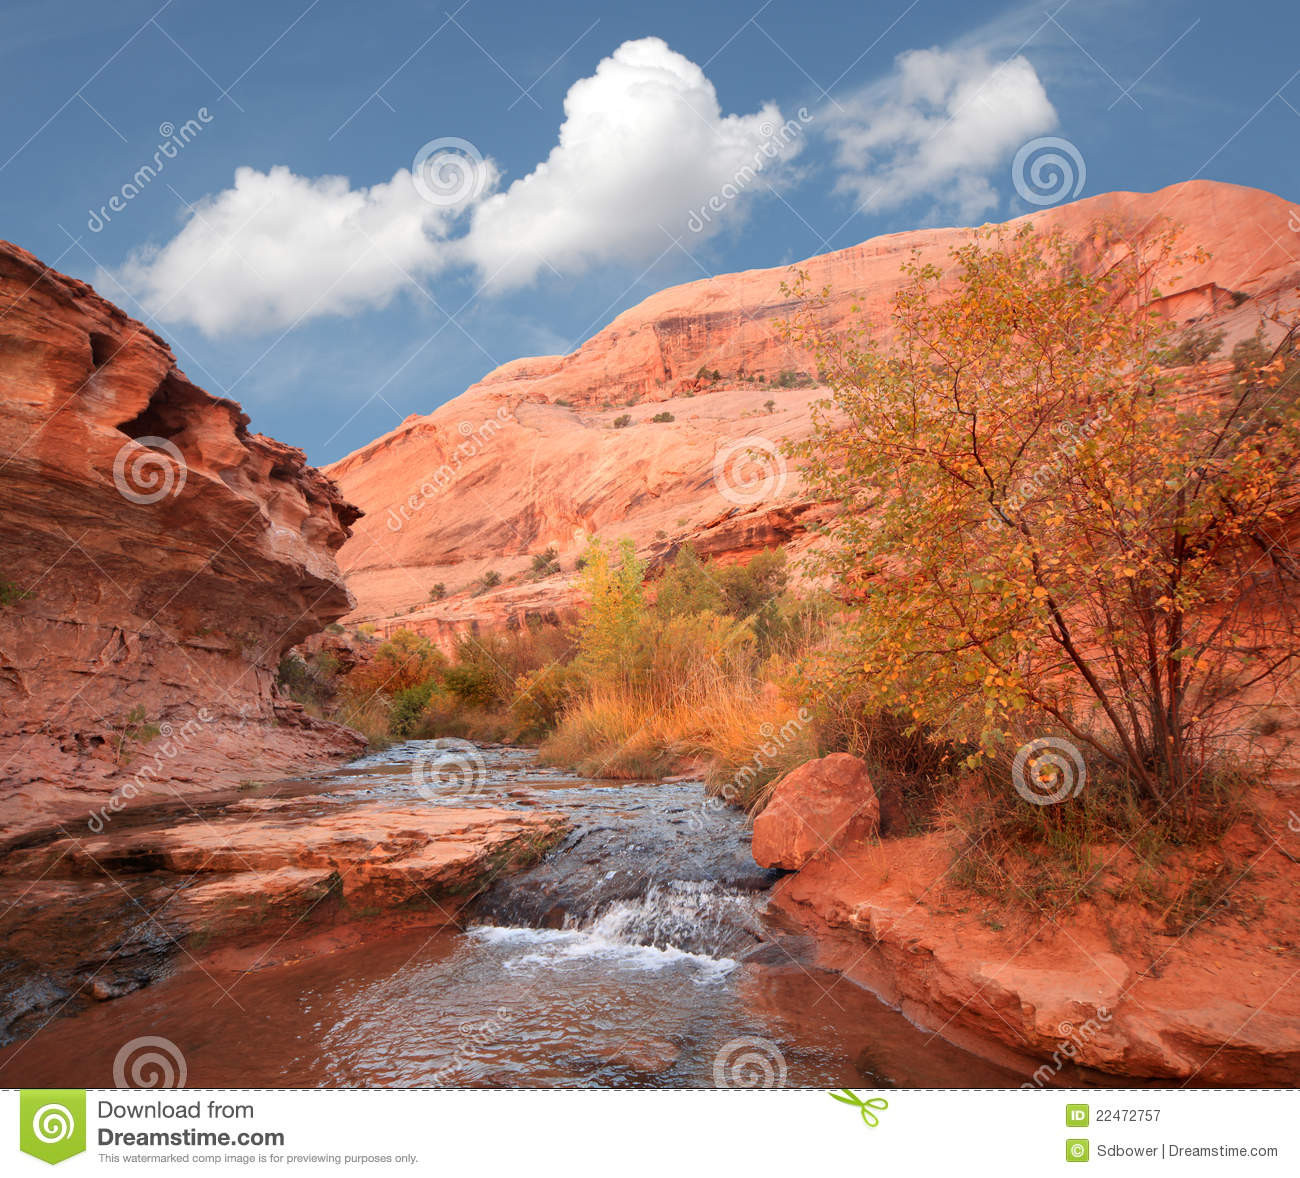 Stream In The Dessert  Stream In The Desert Arches National Park Royalty Free